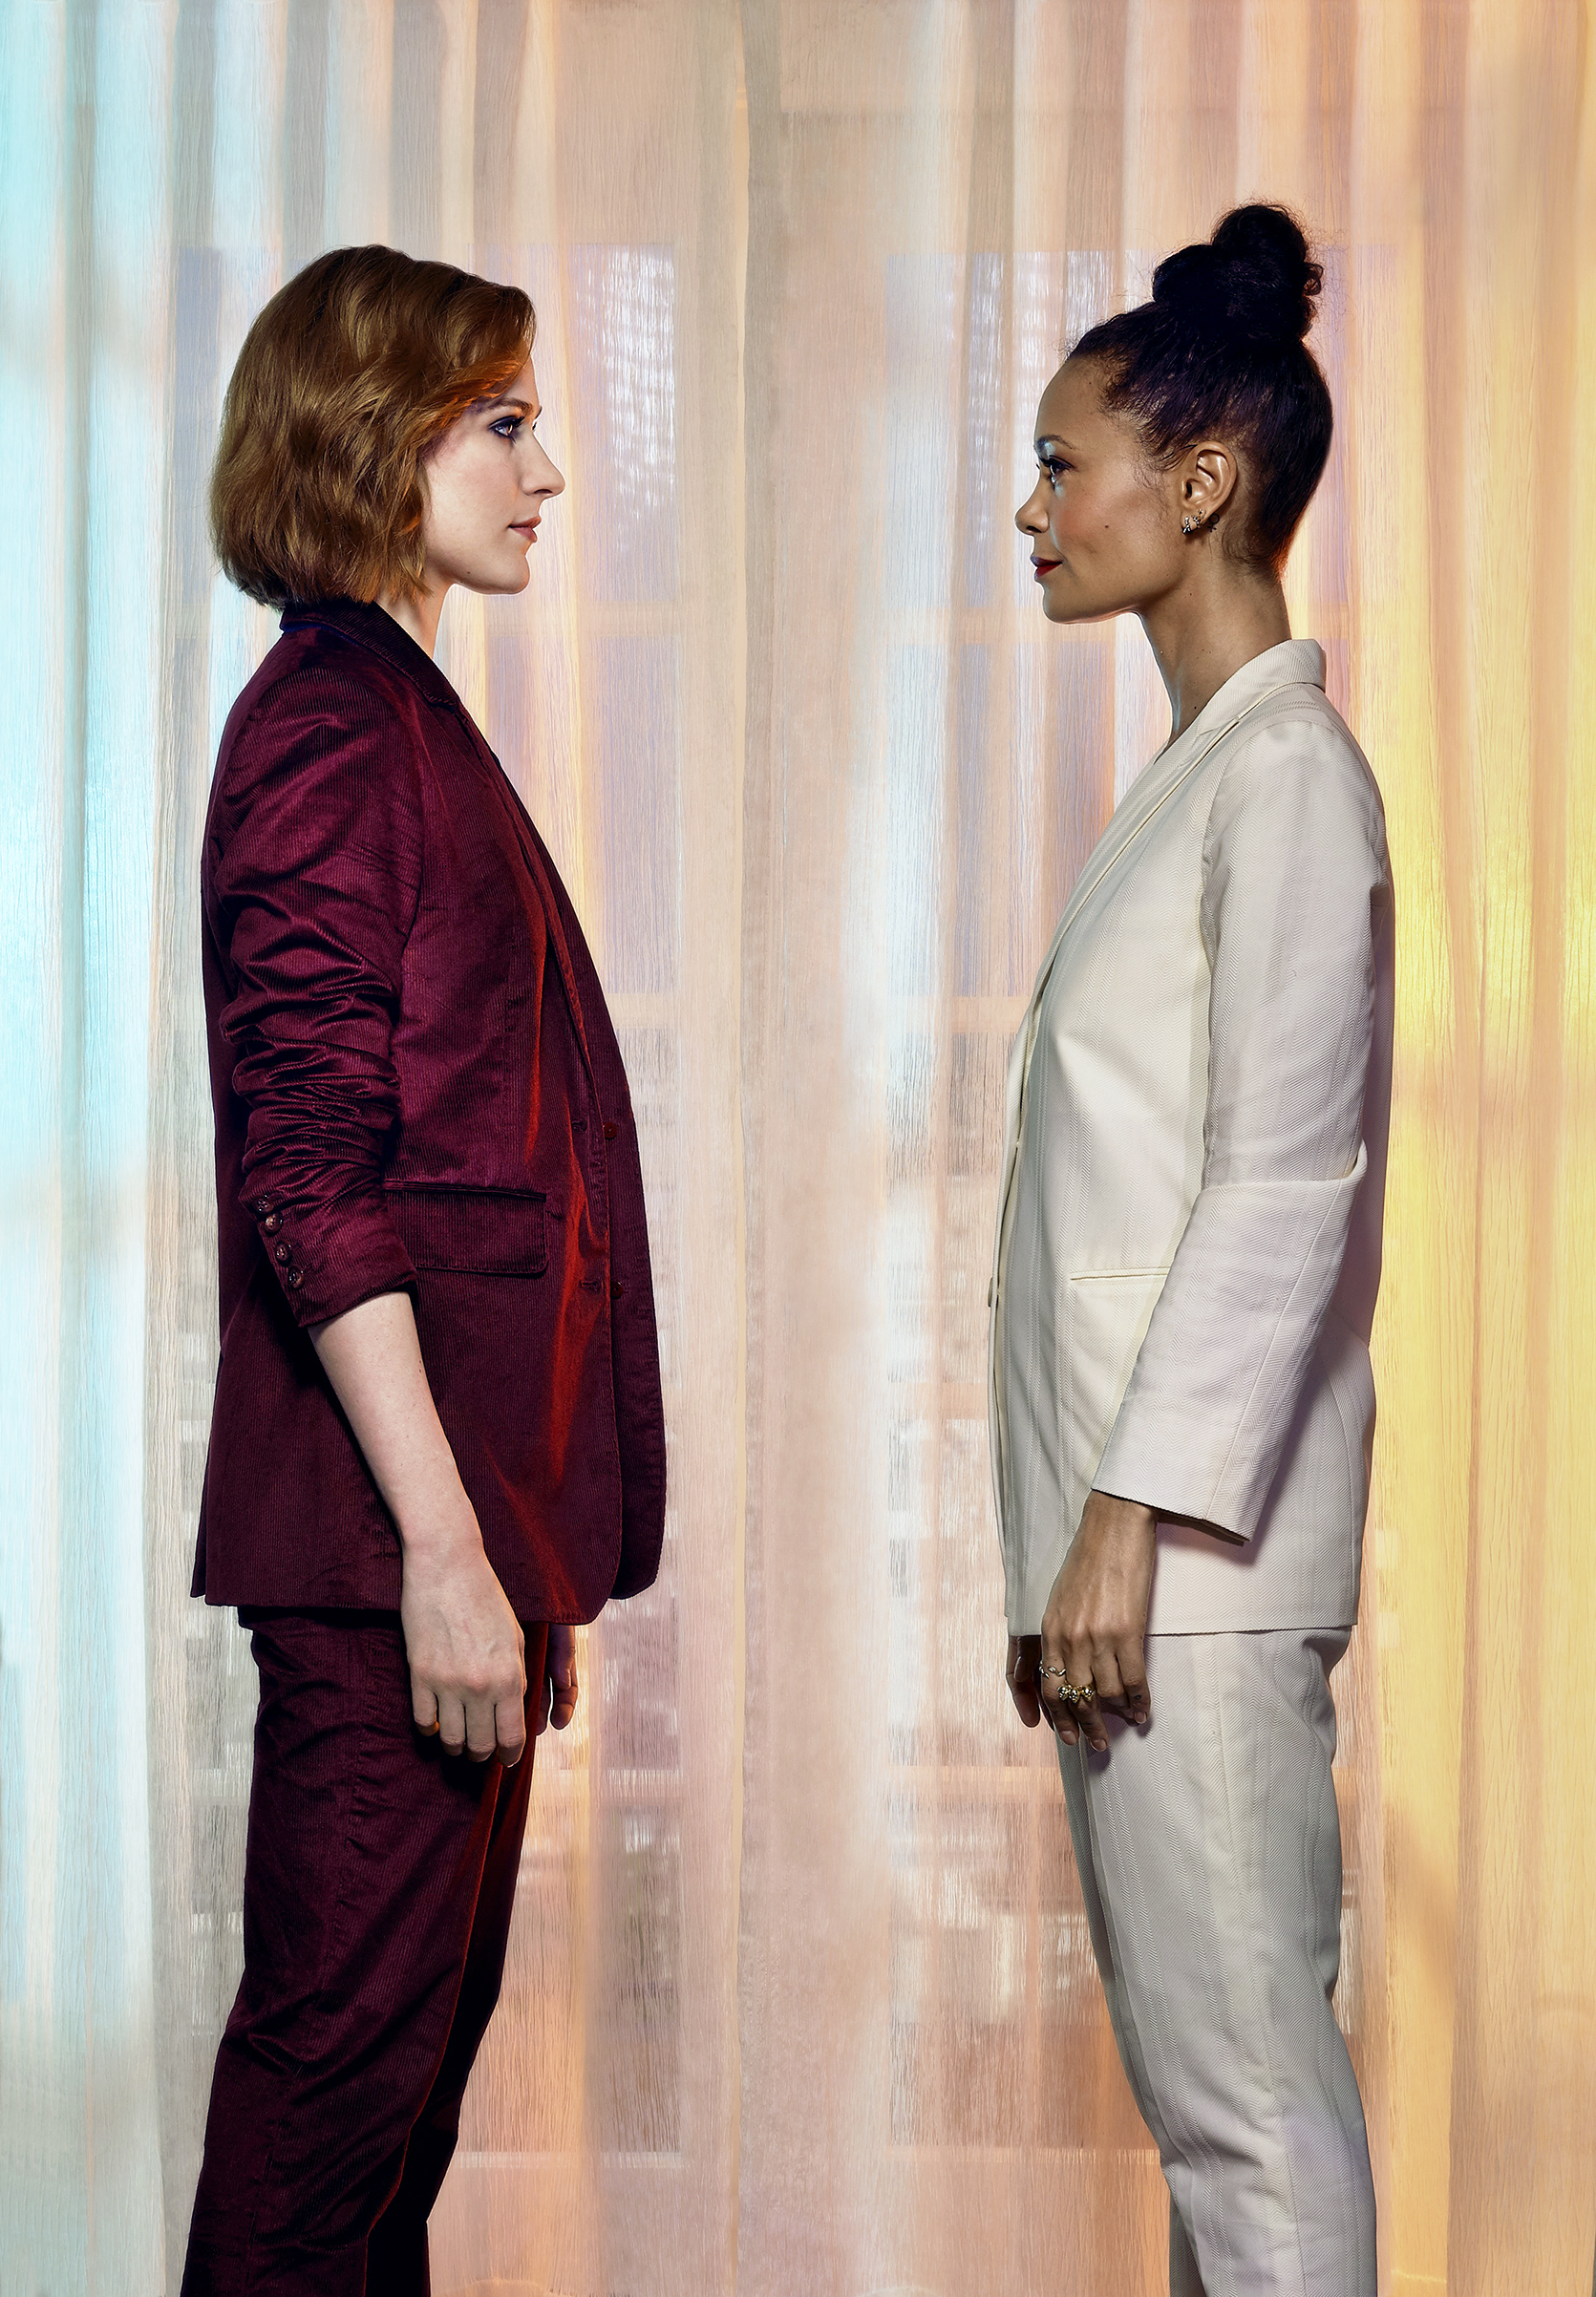 Actors Evan Rachel Wood and Thandie Newton have found new power in HBO's prescient Westworld